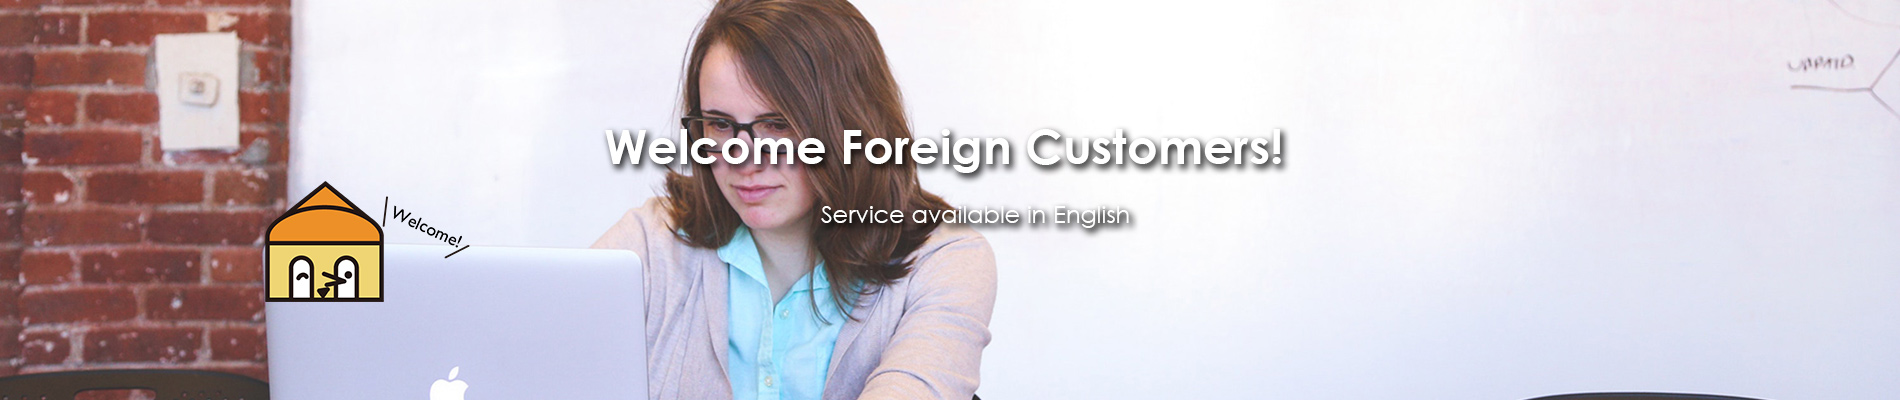 welcome foreign customaers